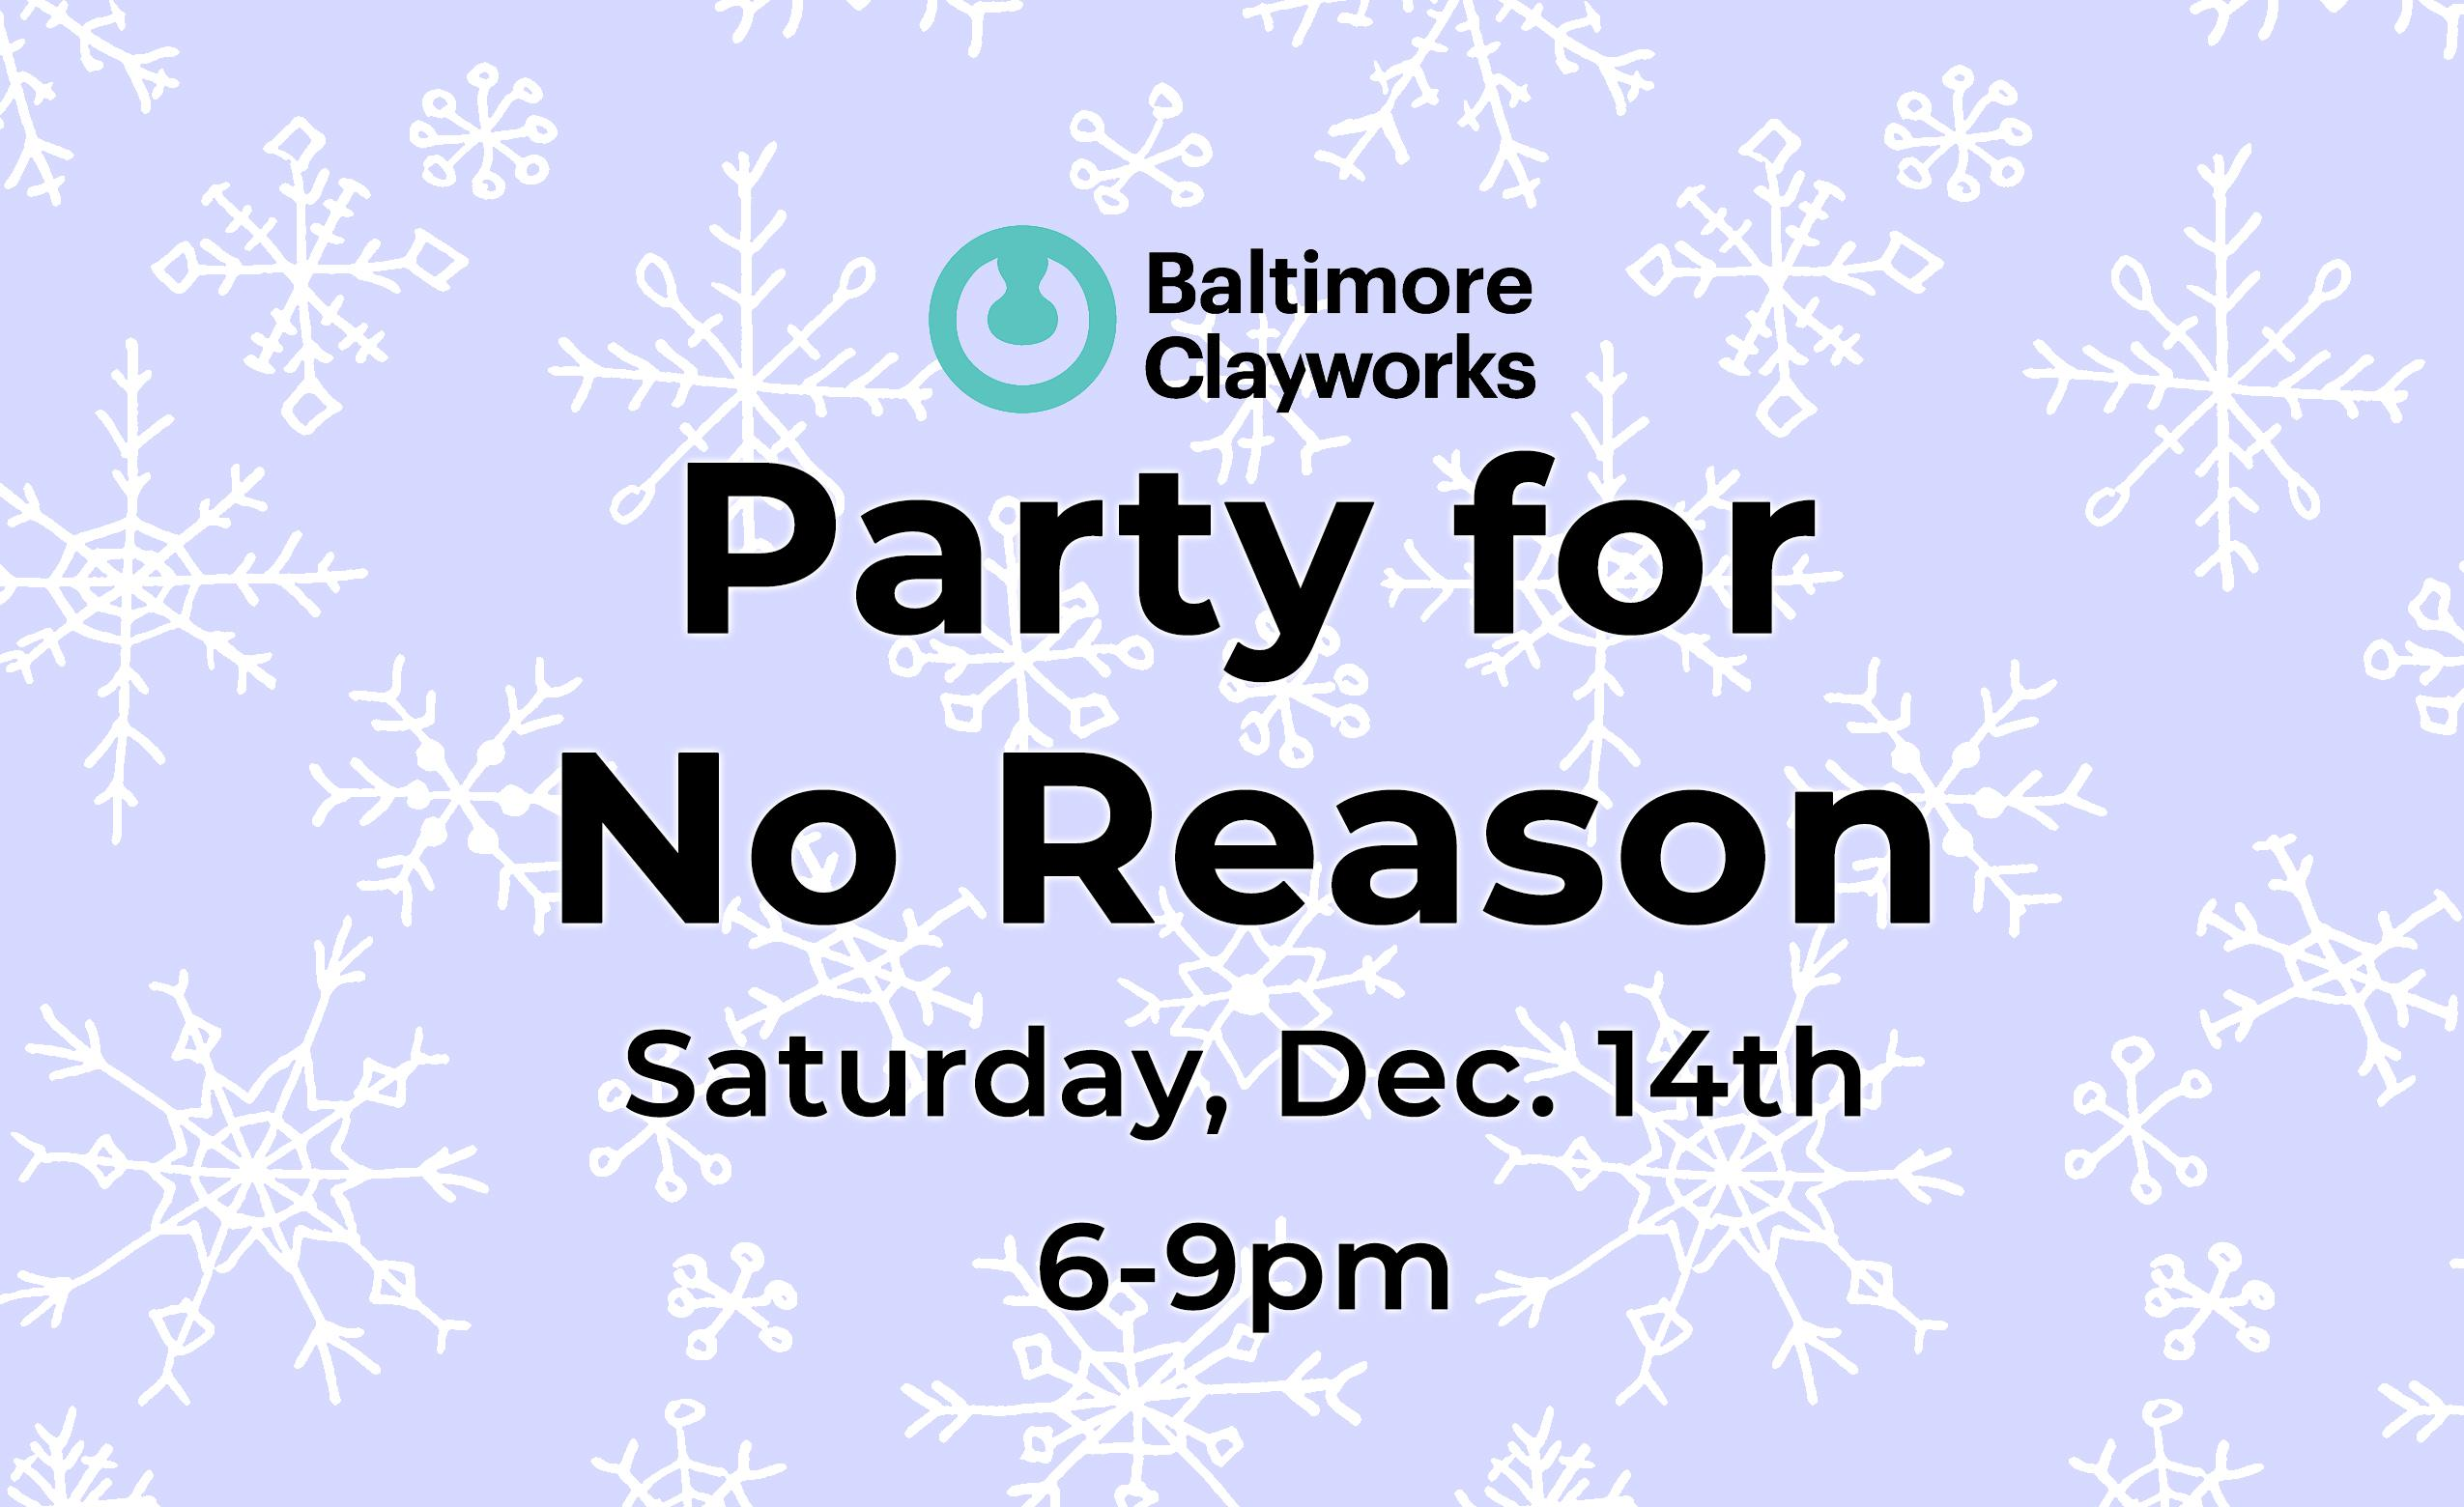 Baltimore Clayworks' Party for No Reason